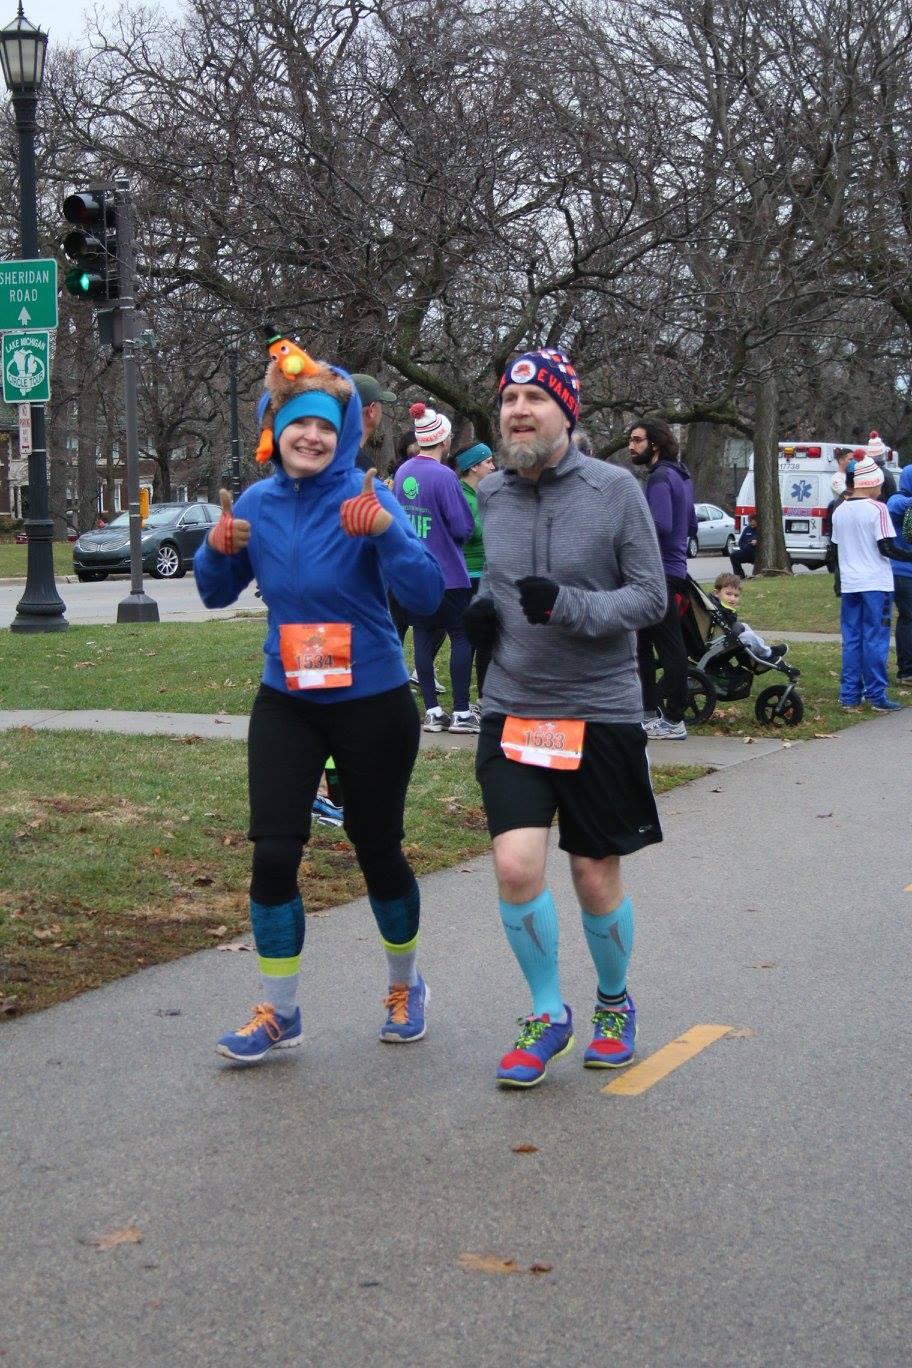 Erica and Fuzzy at the Evanston Flying Turkey 5K